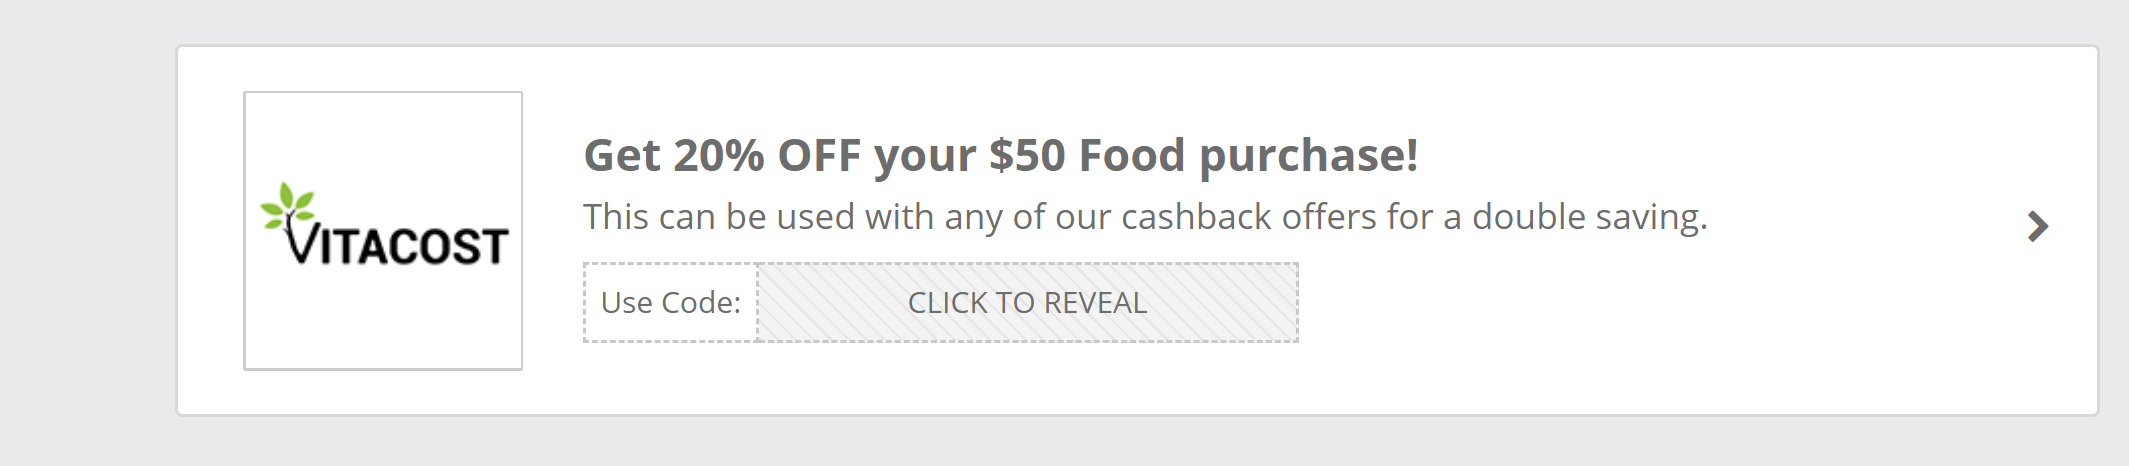 a screenshot image of text that reads Vitacost get 20% off you$50 food purchase in black text with a grey rectangle border around the image